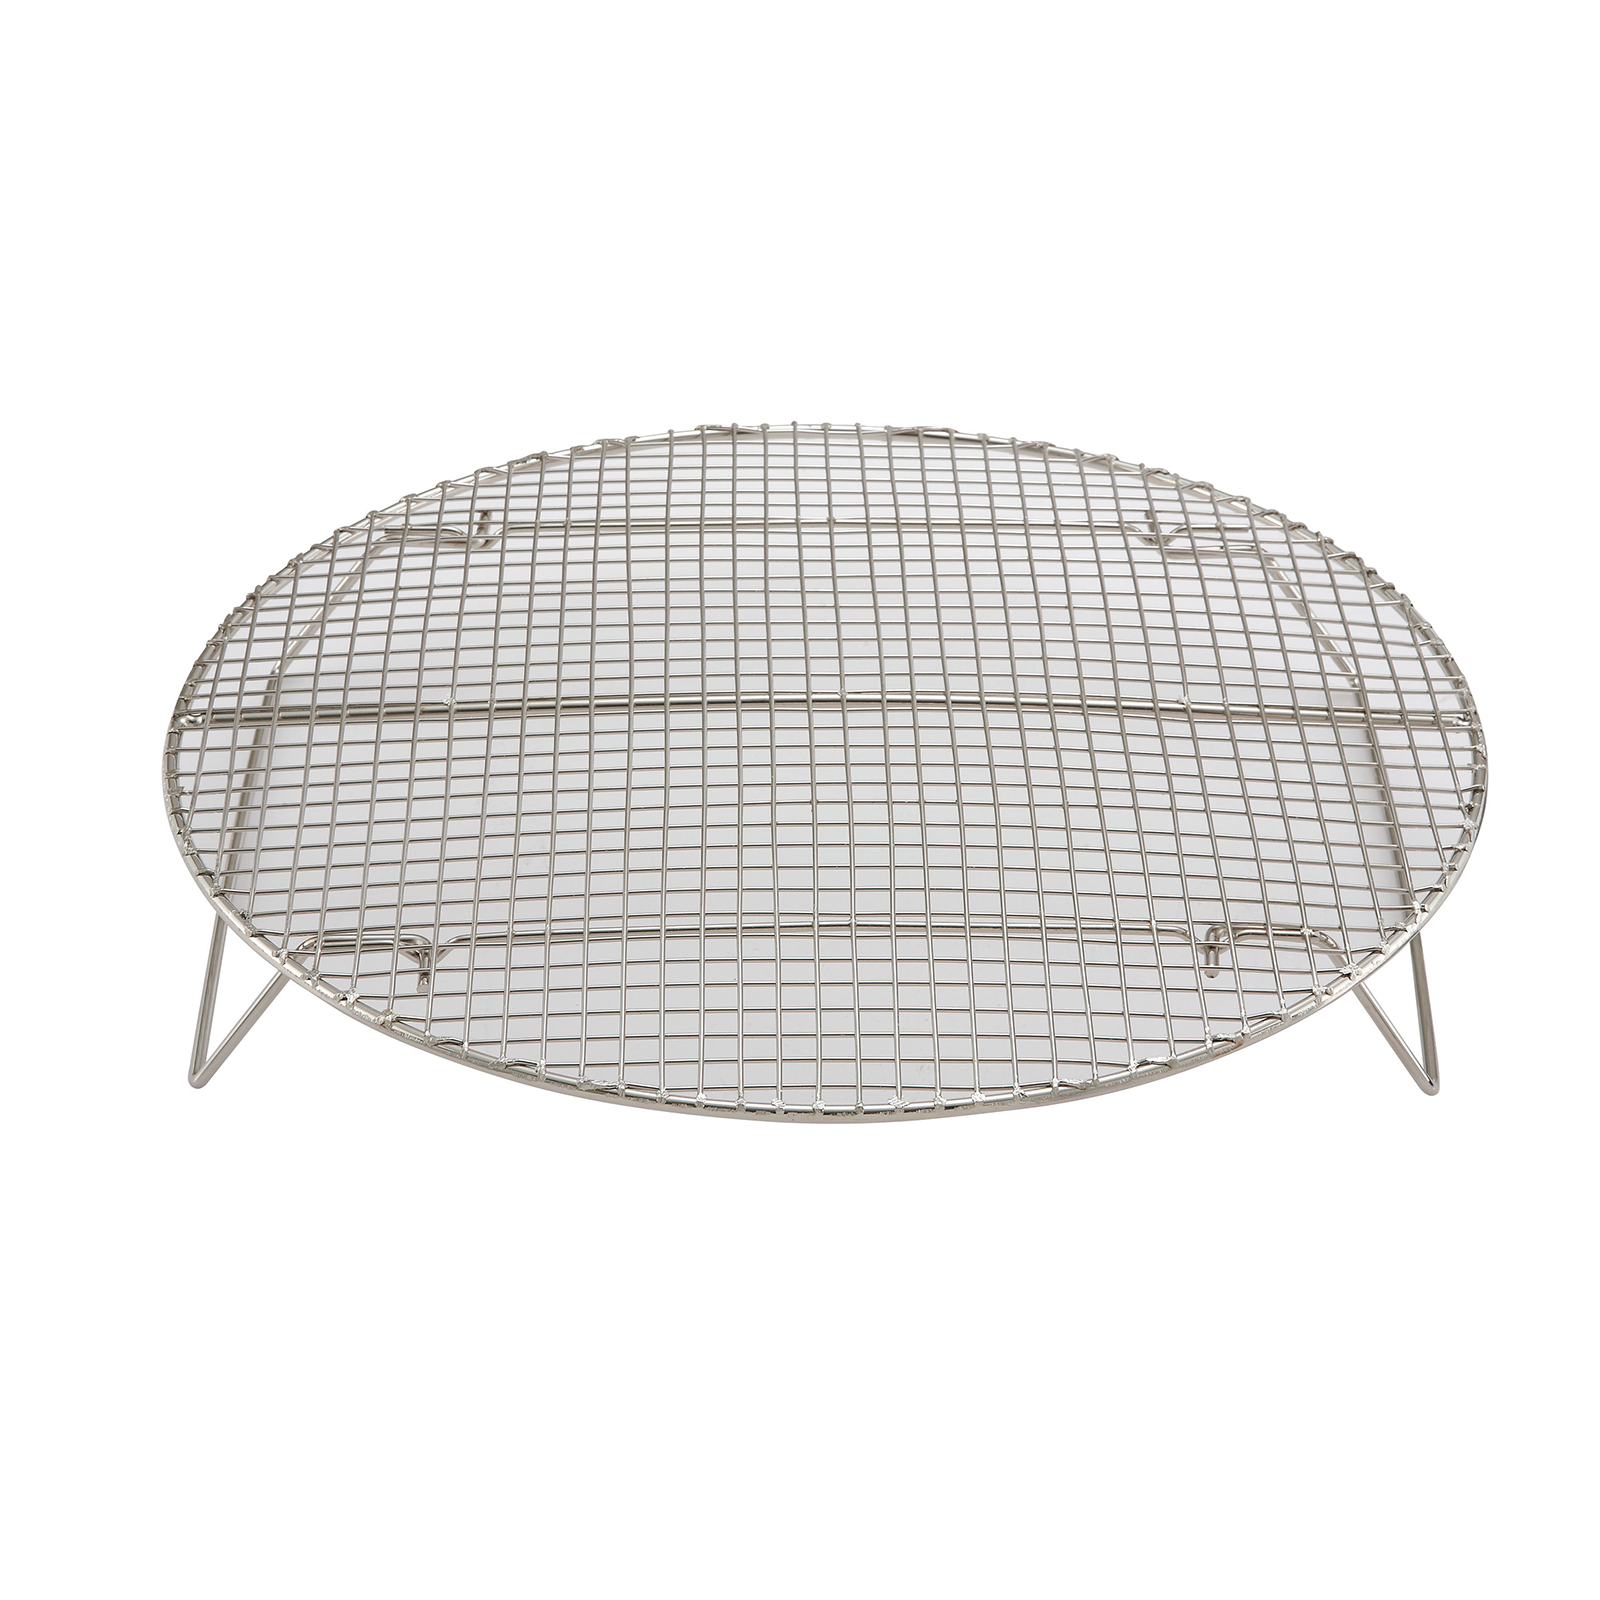 Winco STR-10 wire pan rack / grate